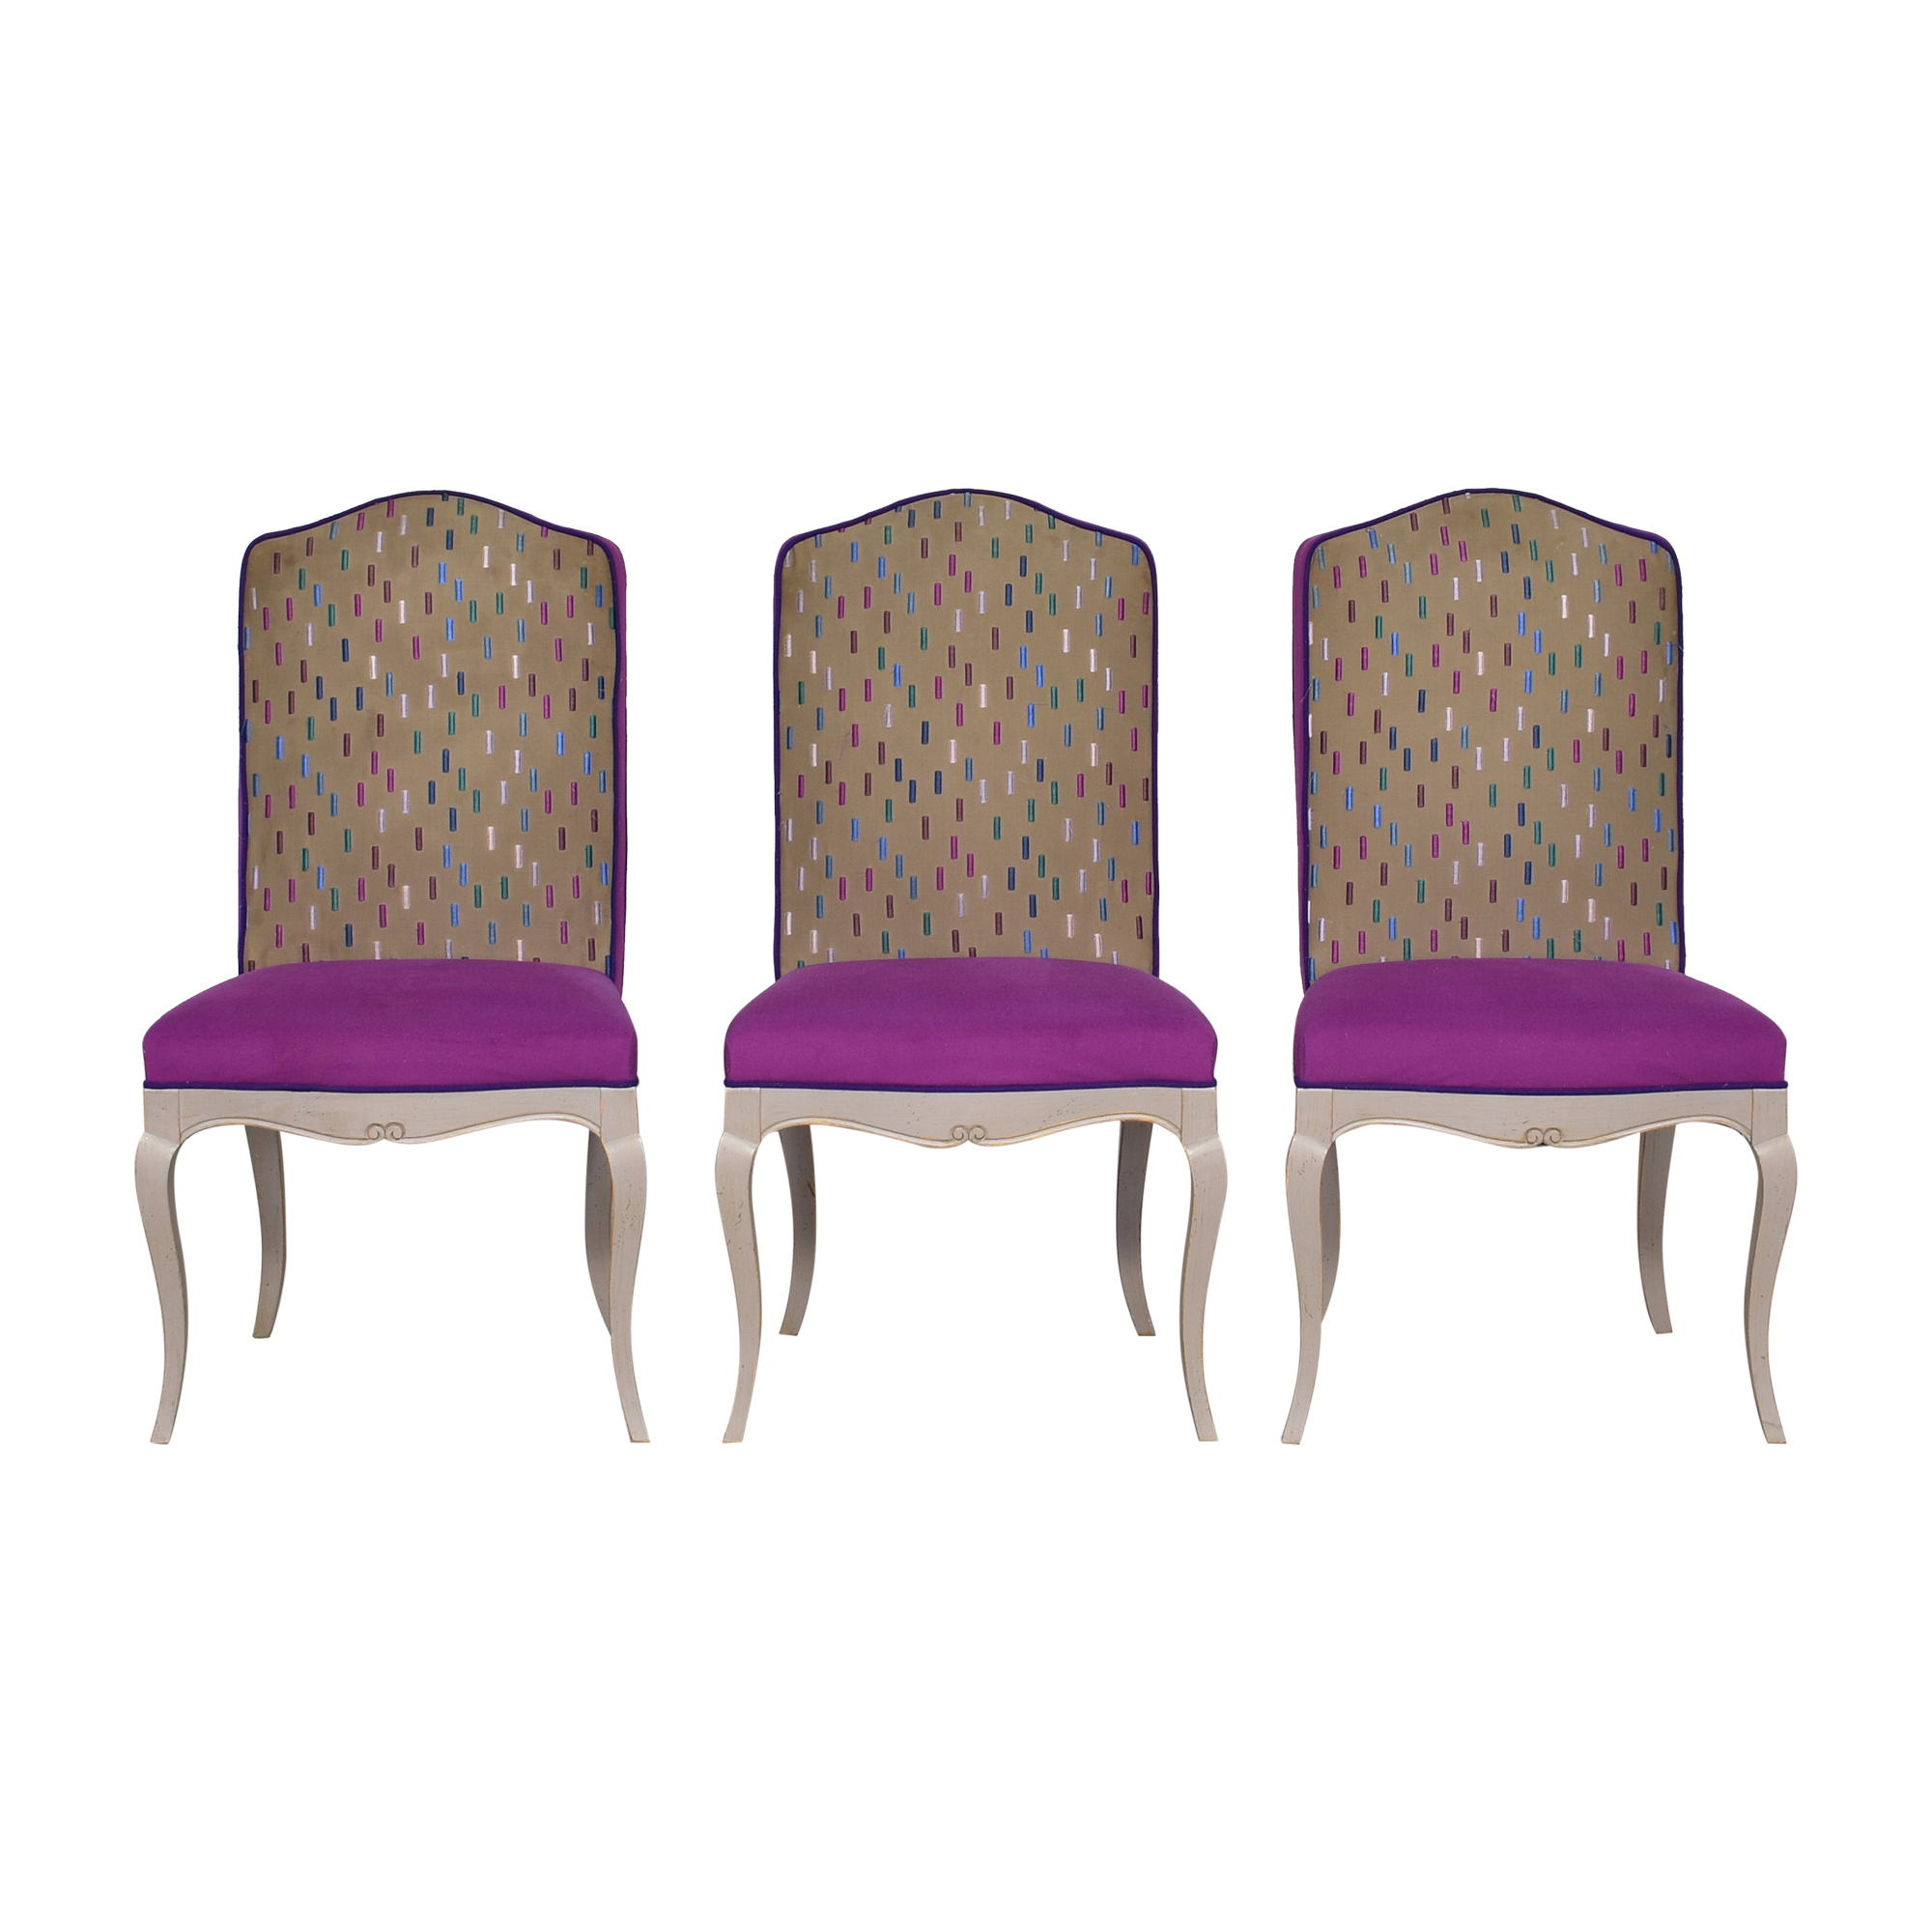 Roche Bobois Upholstered Dining Chairs Roche Bobois